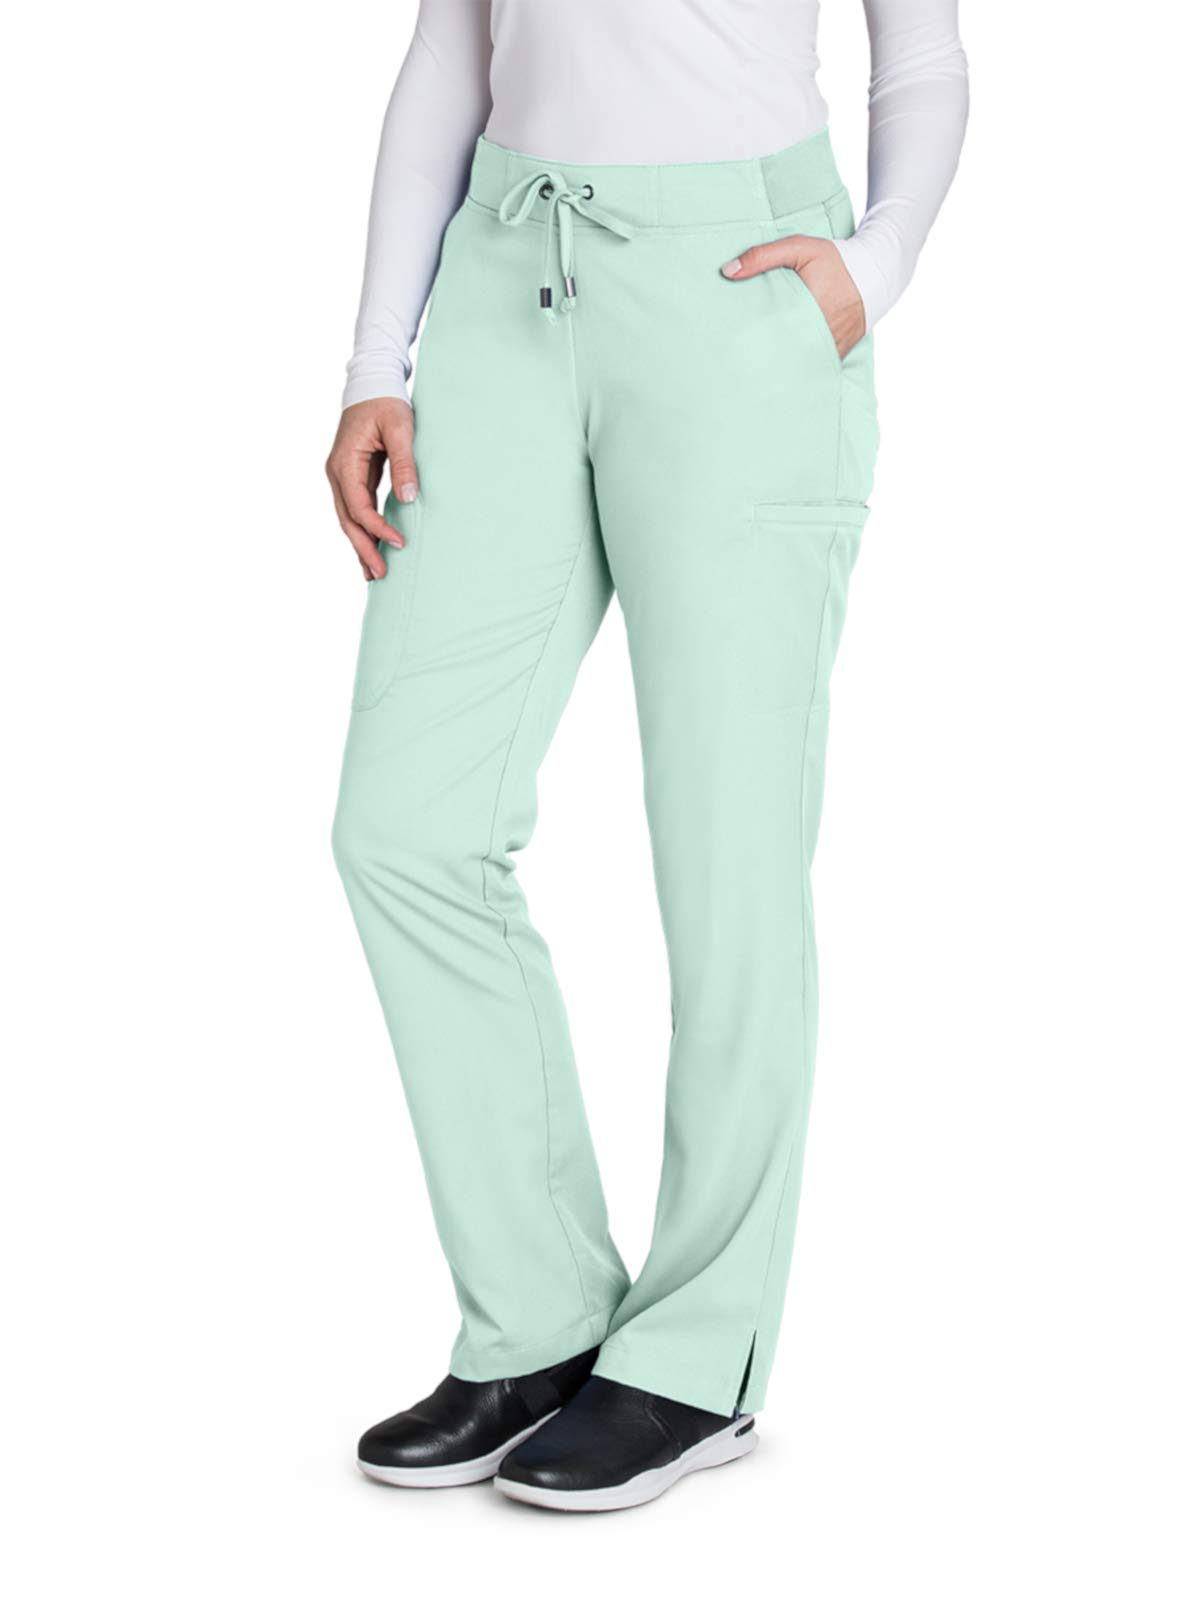 Grey's Anatomy 4277 Straight Leg Pant Aqua Mist XL